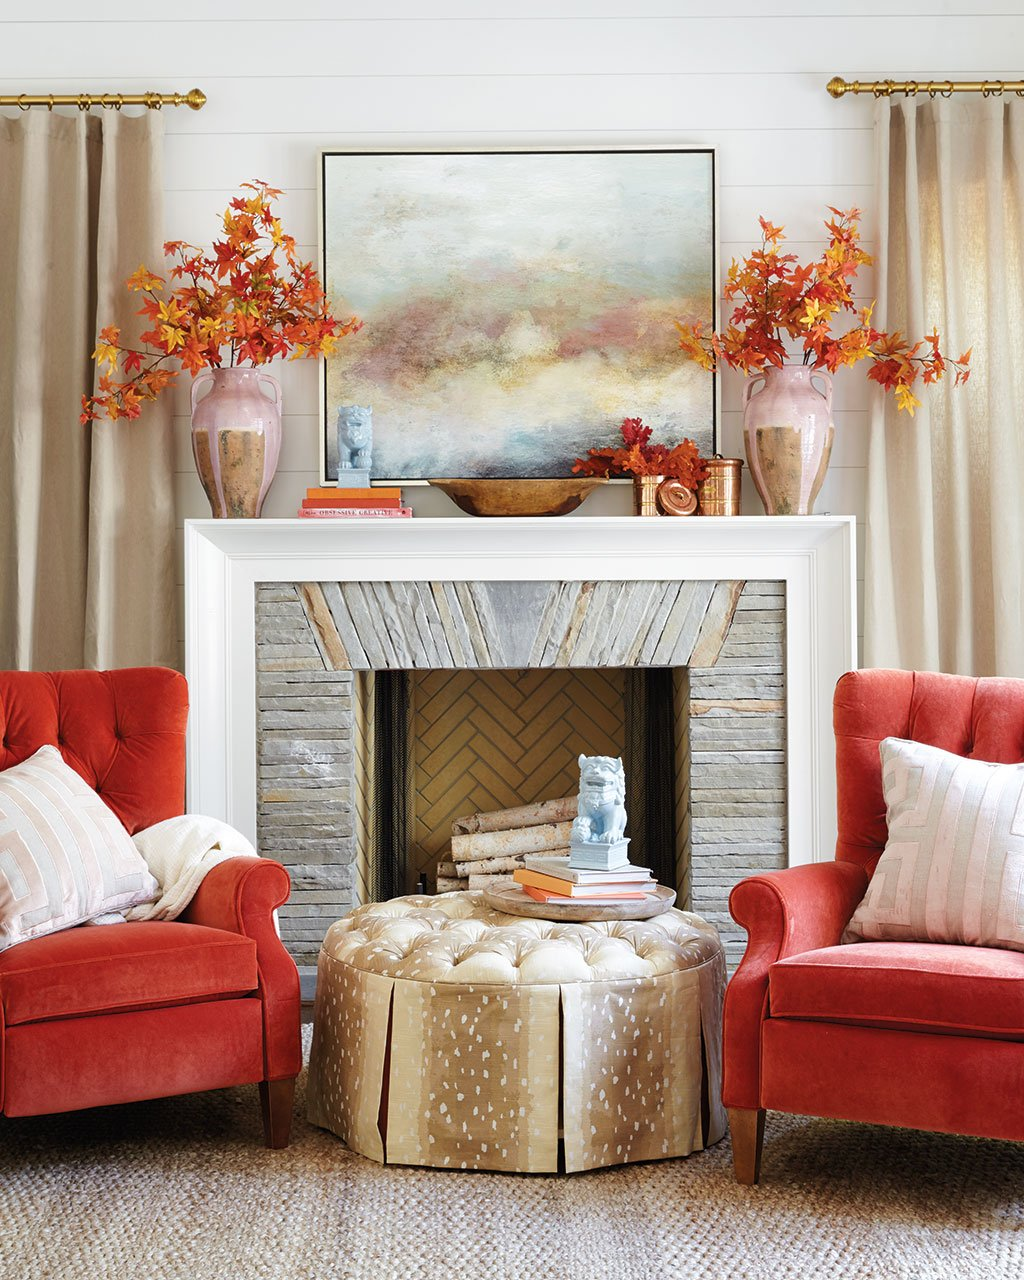 3 ways to decorate your mantel for fall how to decorate shop mayme vase collection braided jute rug queens velvet pumpkin fabric by the yard ballard designs hayes ottoman ballard designs in the air art